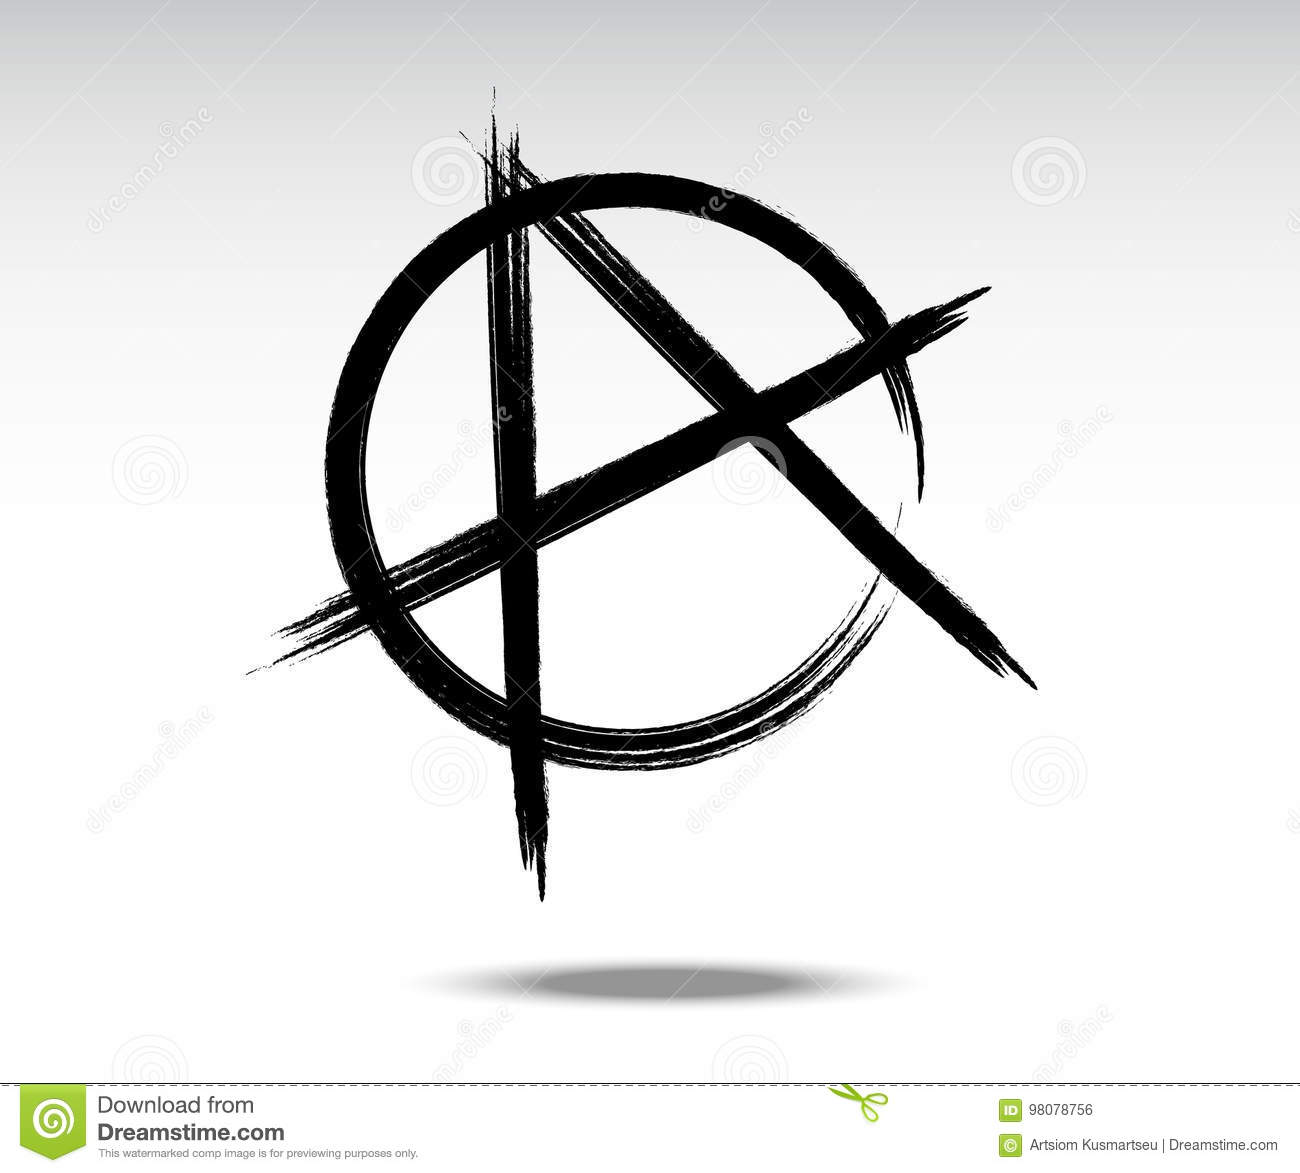 Vector Illustration Of Black Anarchy Sign Stock Vector